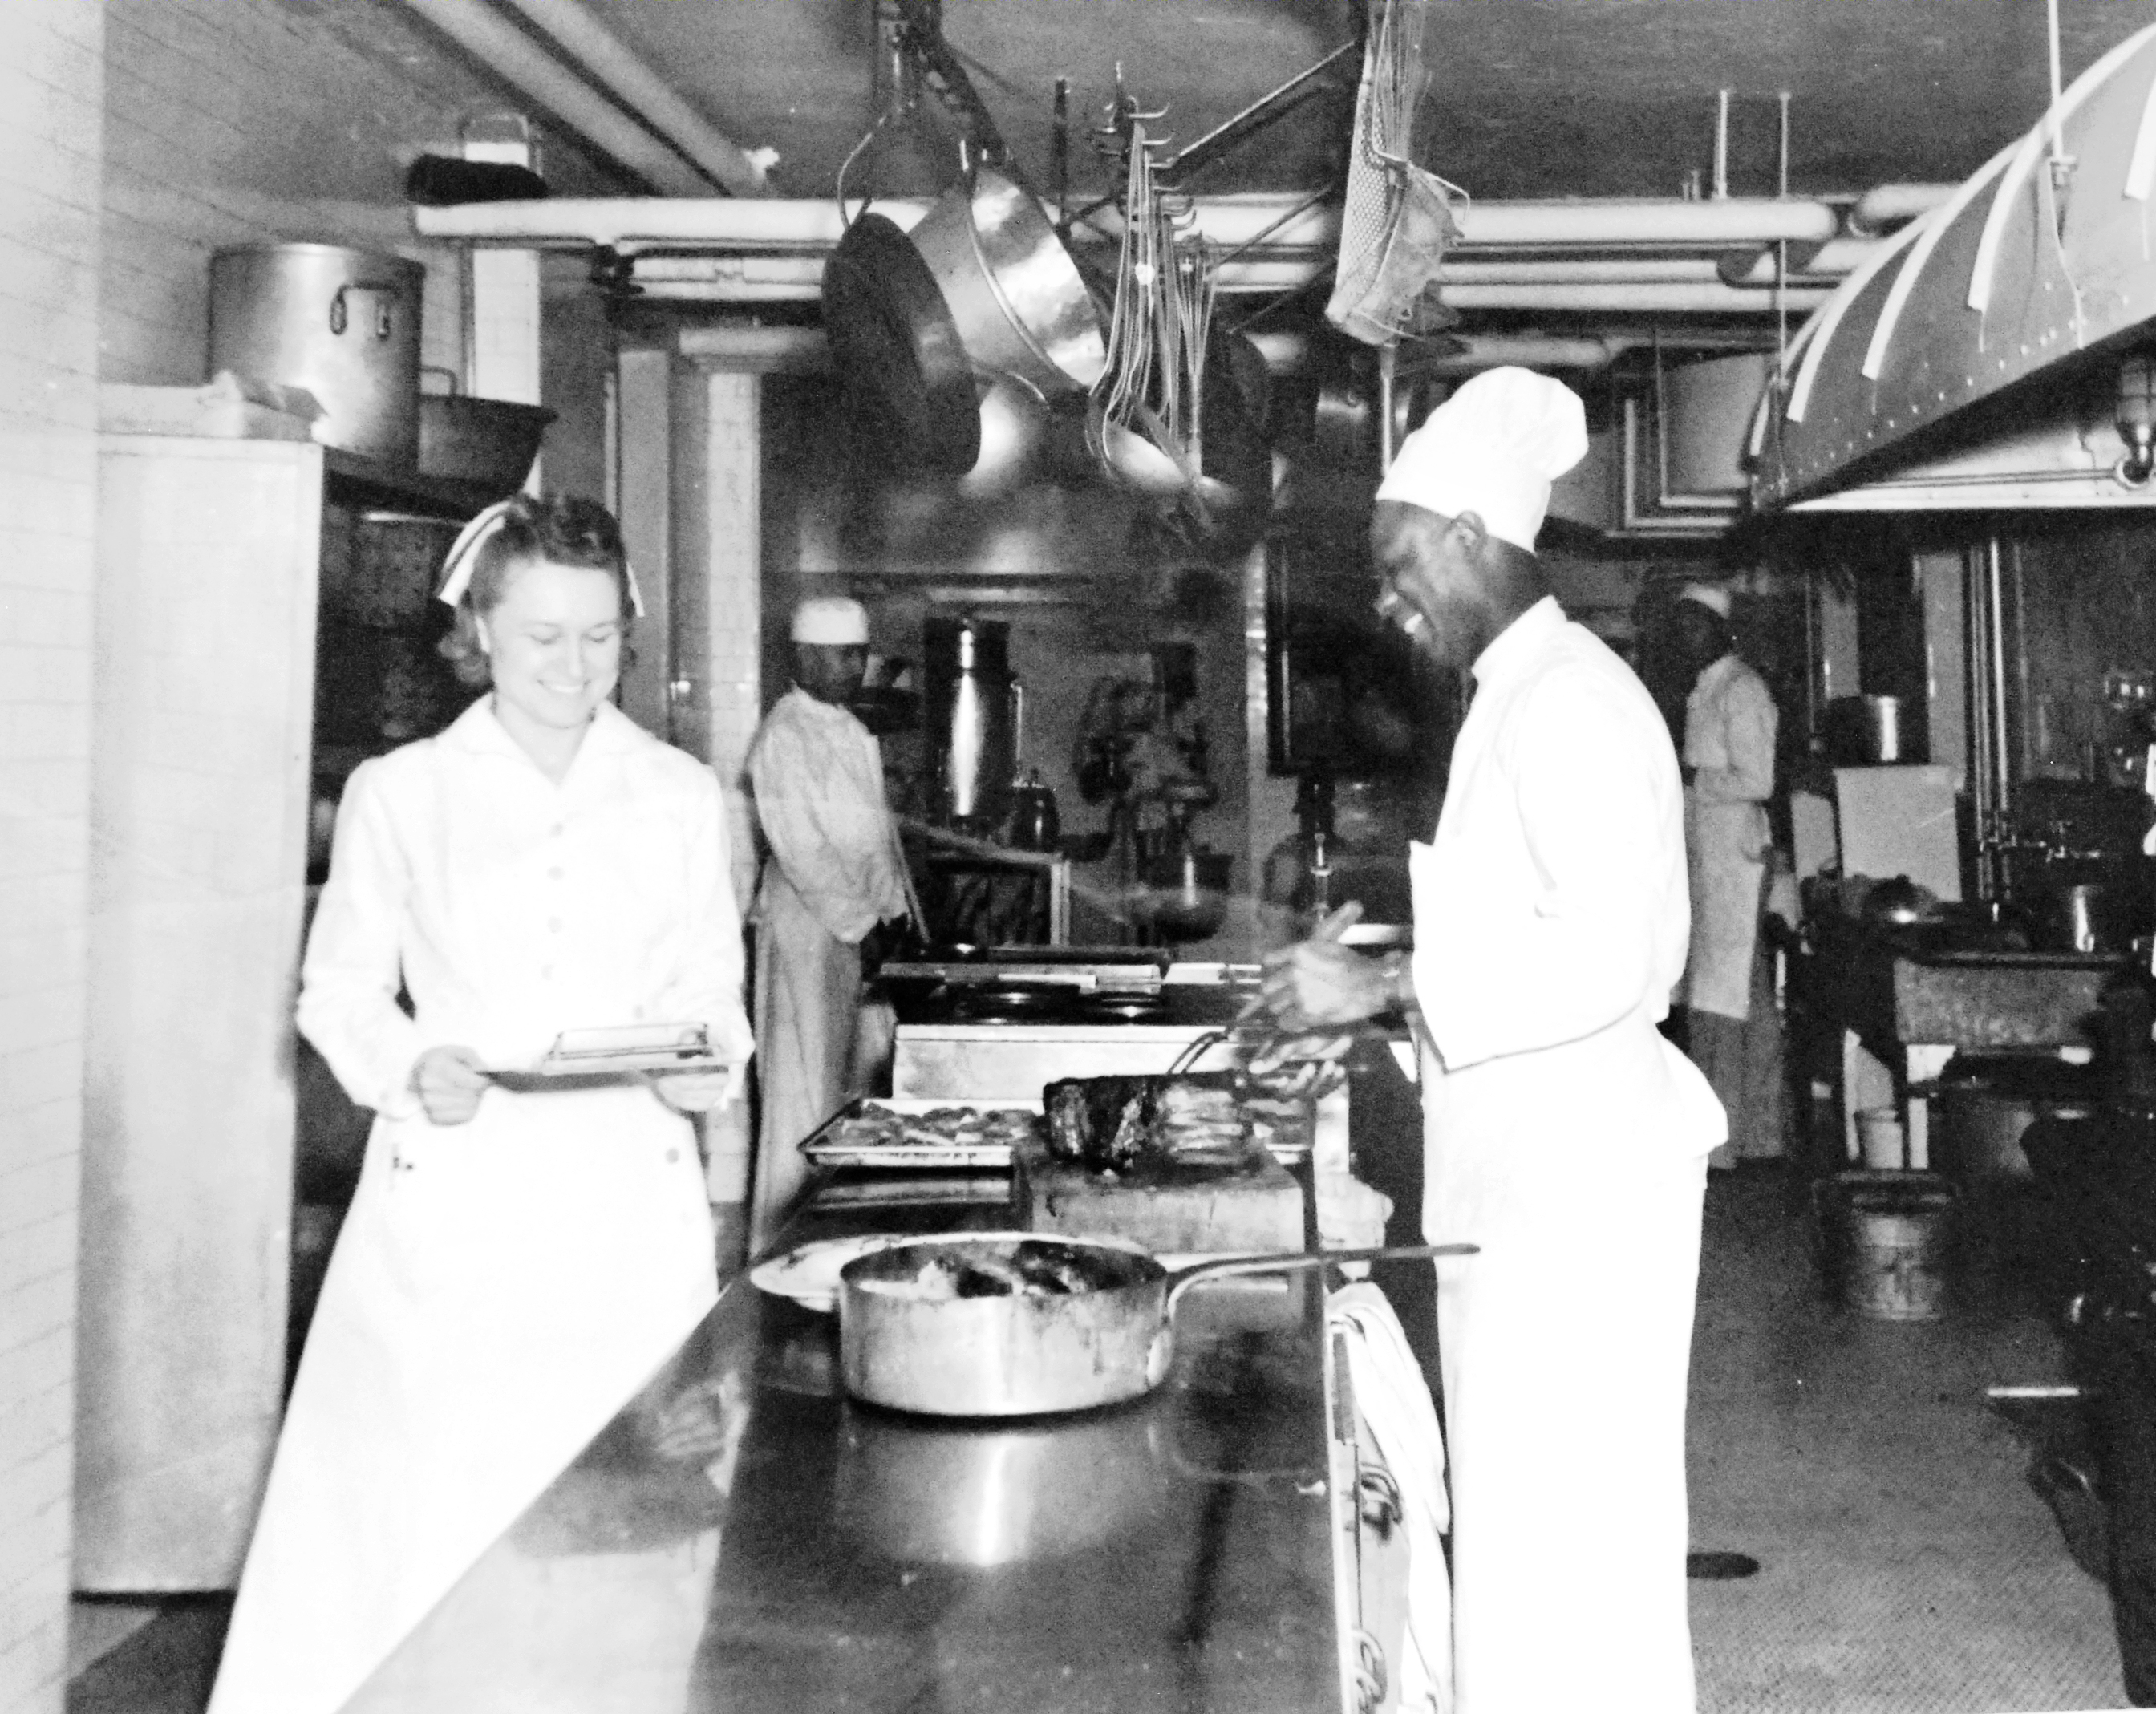 WWII Navy Nurse and Steward in Hospital Ship's Kitchen